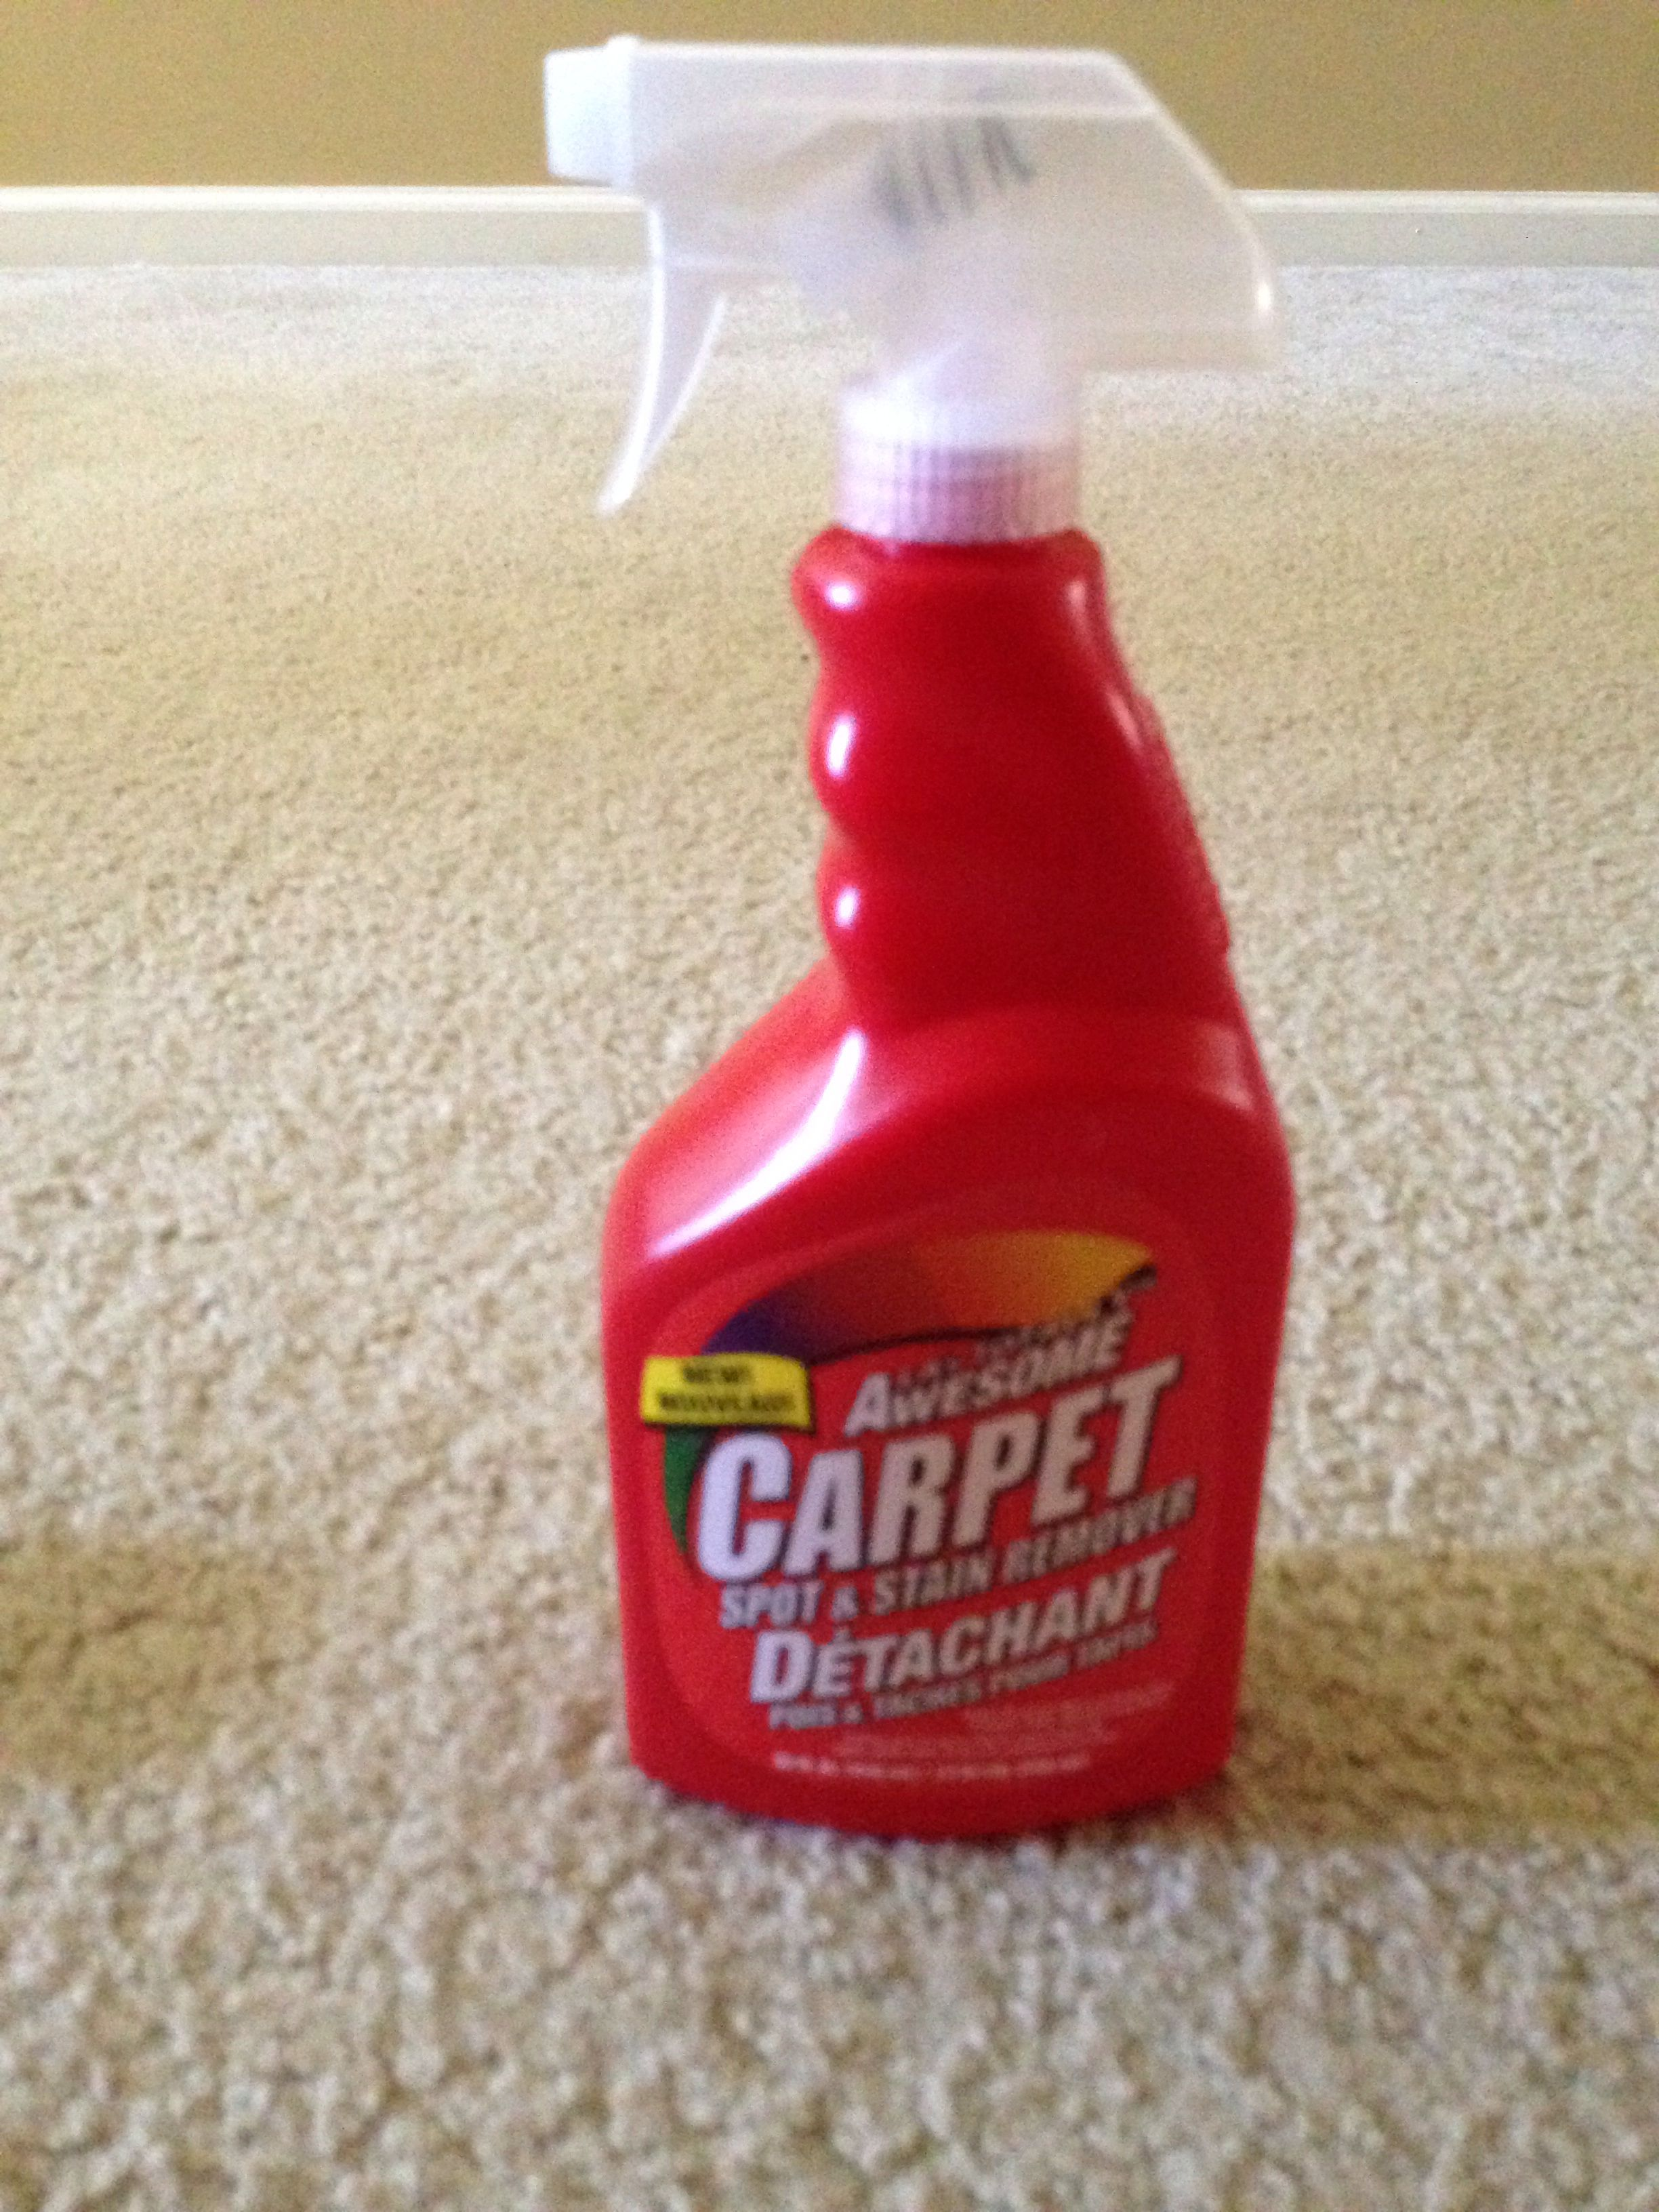 Dollar Store Carpet Cleaner Works Way Better Than 5 Resolve Carpet Cleaner Available At The Dollar Tree Carpet Cleaners Best Cleaning Products Dollar Stores